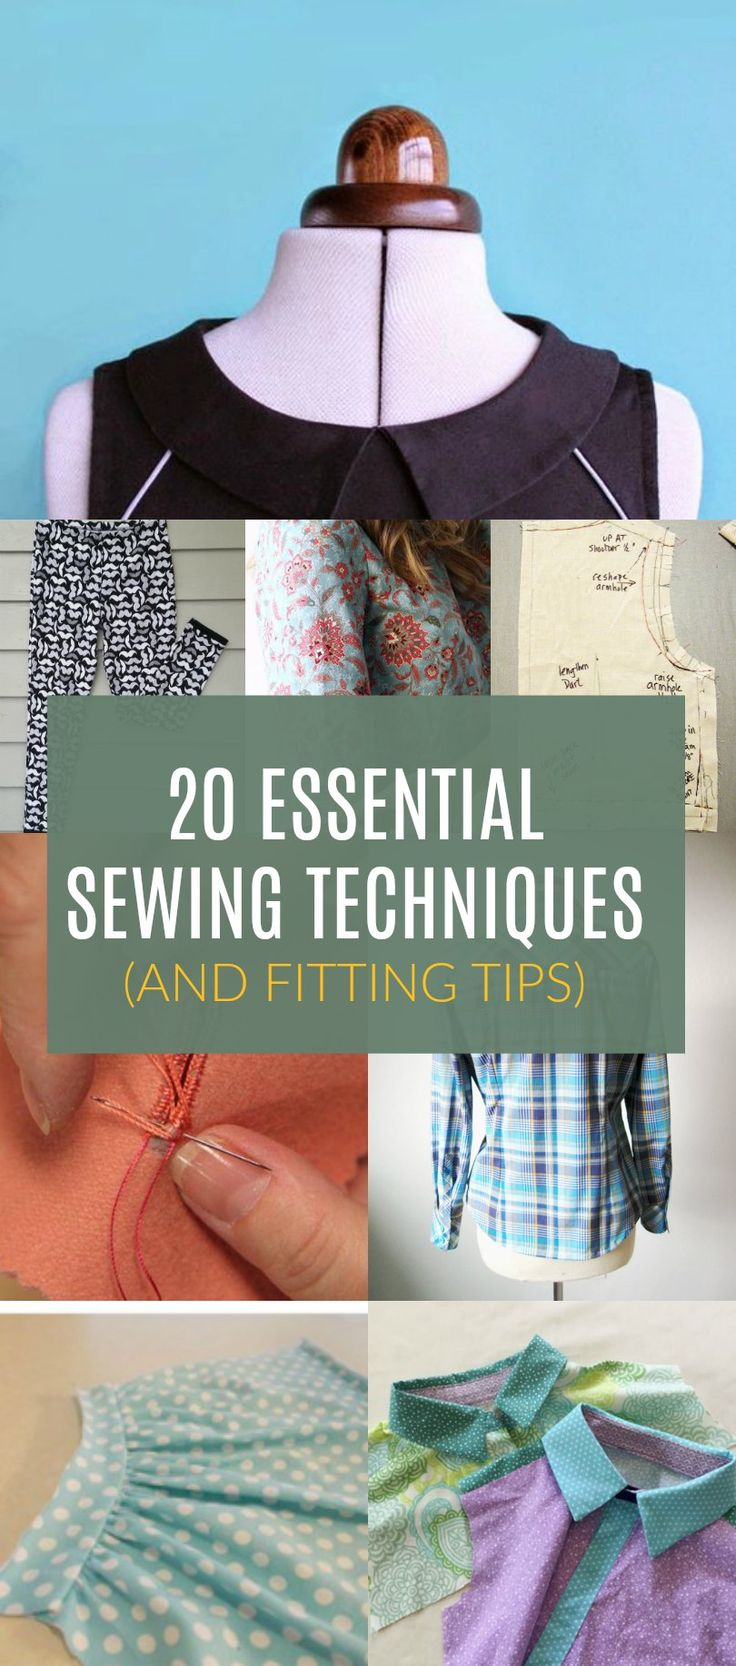 ROUNDUP: 20 Essential Sewing Techniques | On the Cutting Floor: Printable pdf sewing patterns and tutorials for women